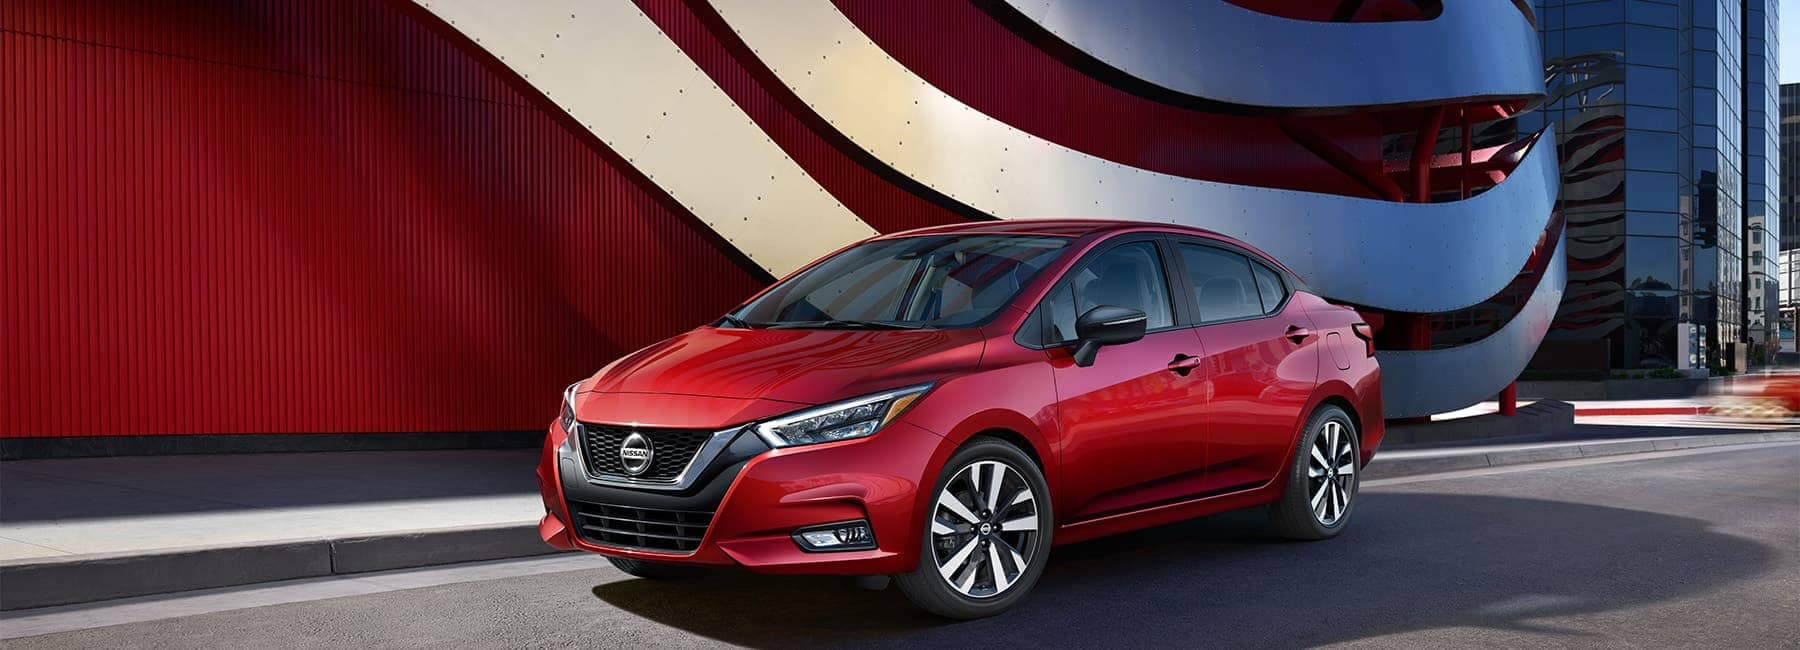 2020 Red Nissan Versa Exterior in Front of a Red Curved Wall